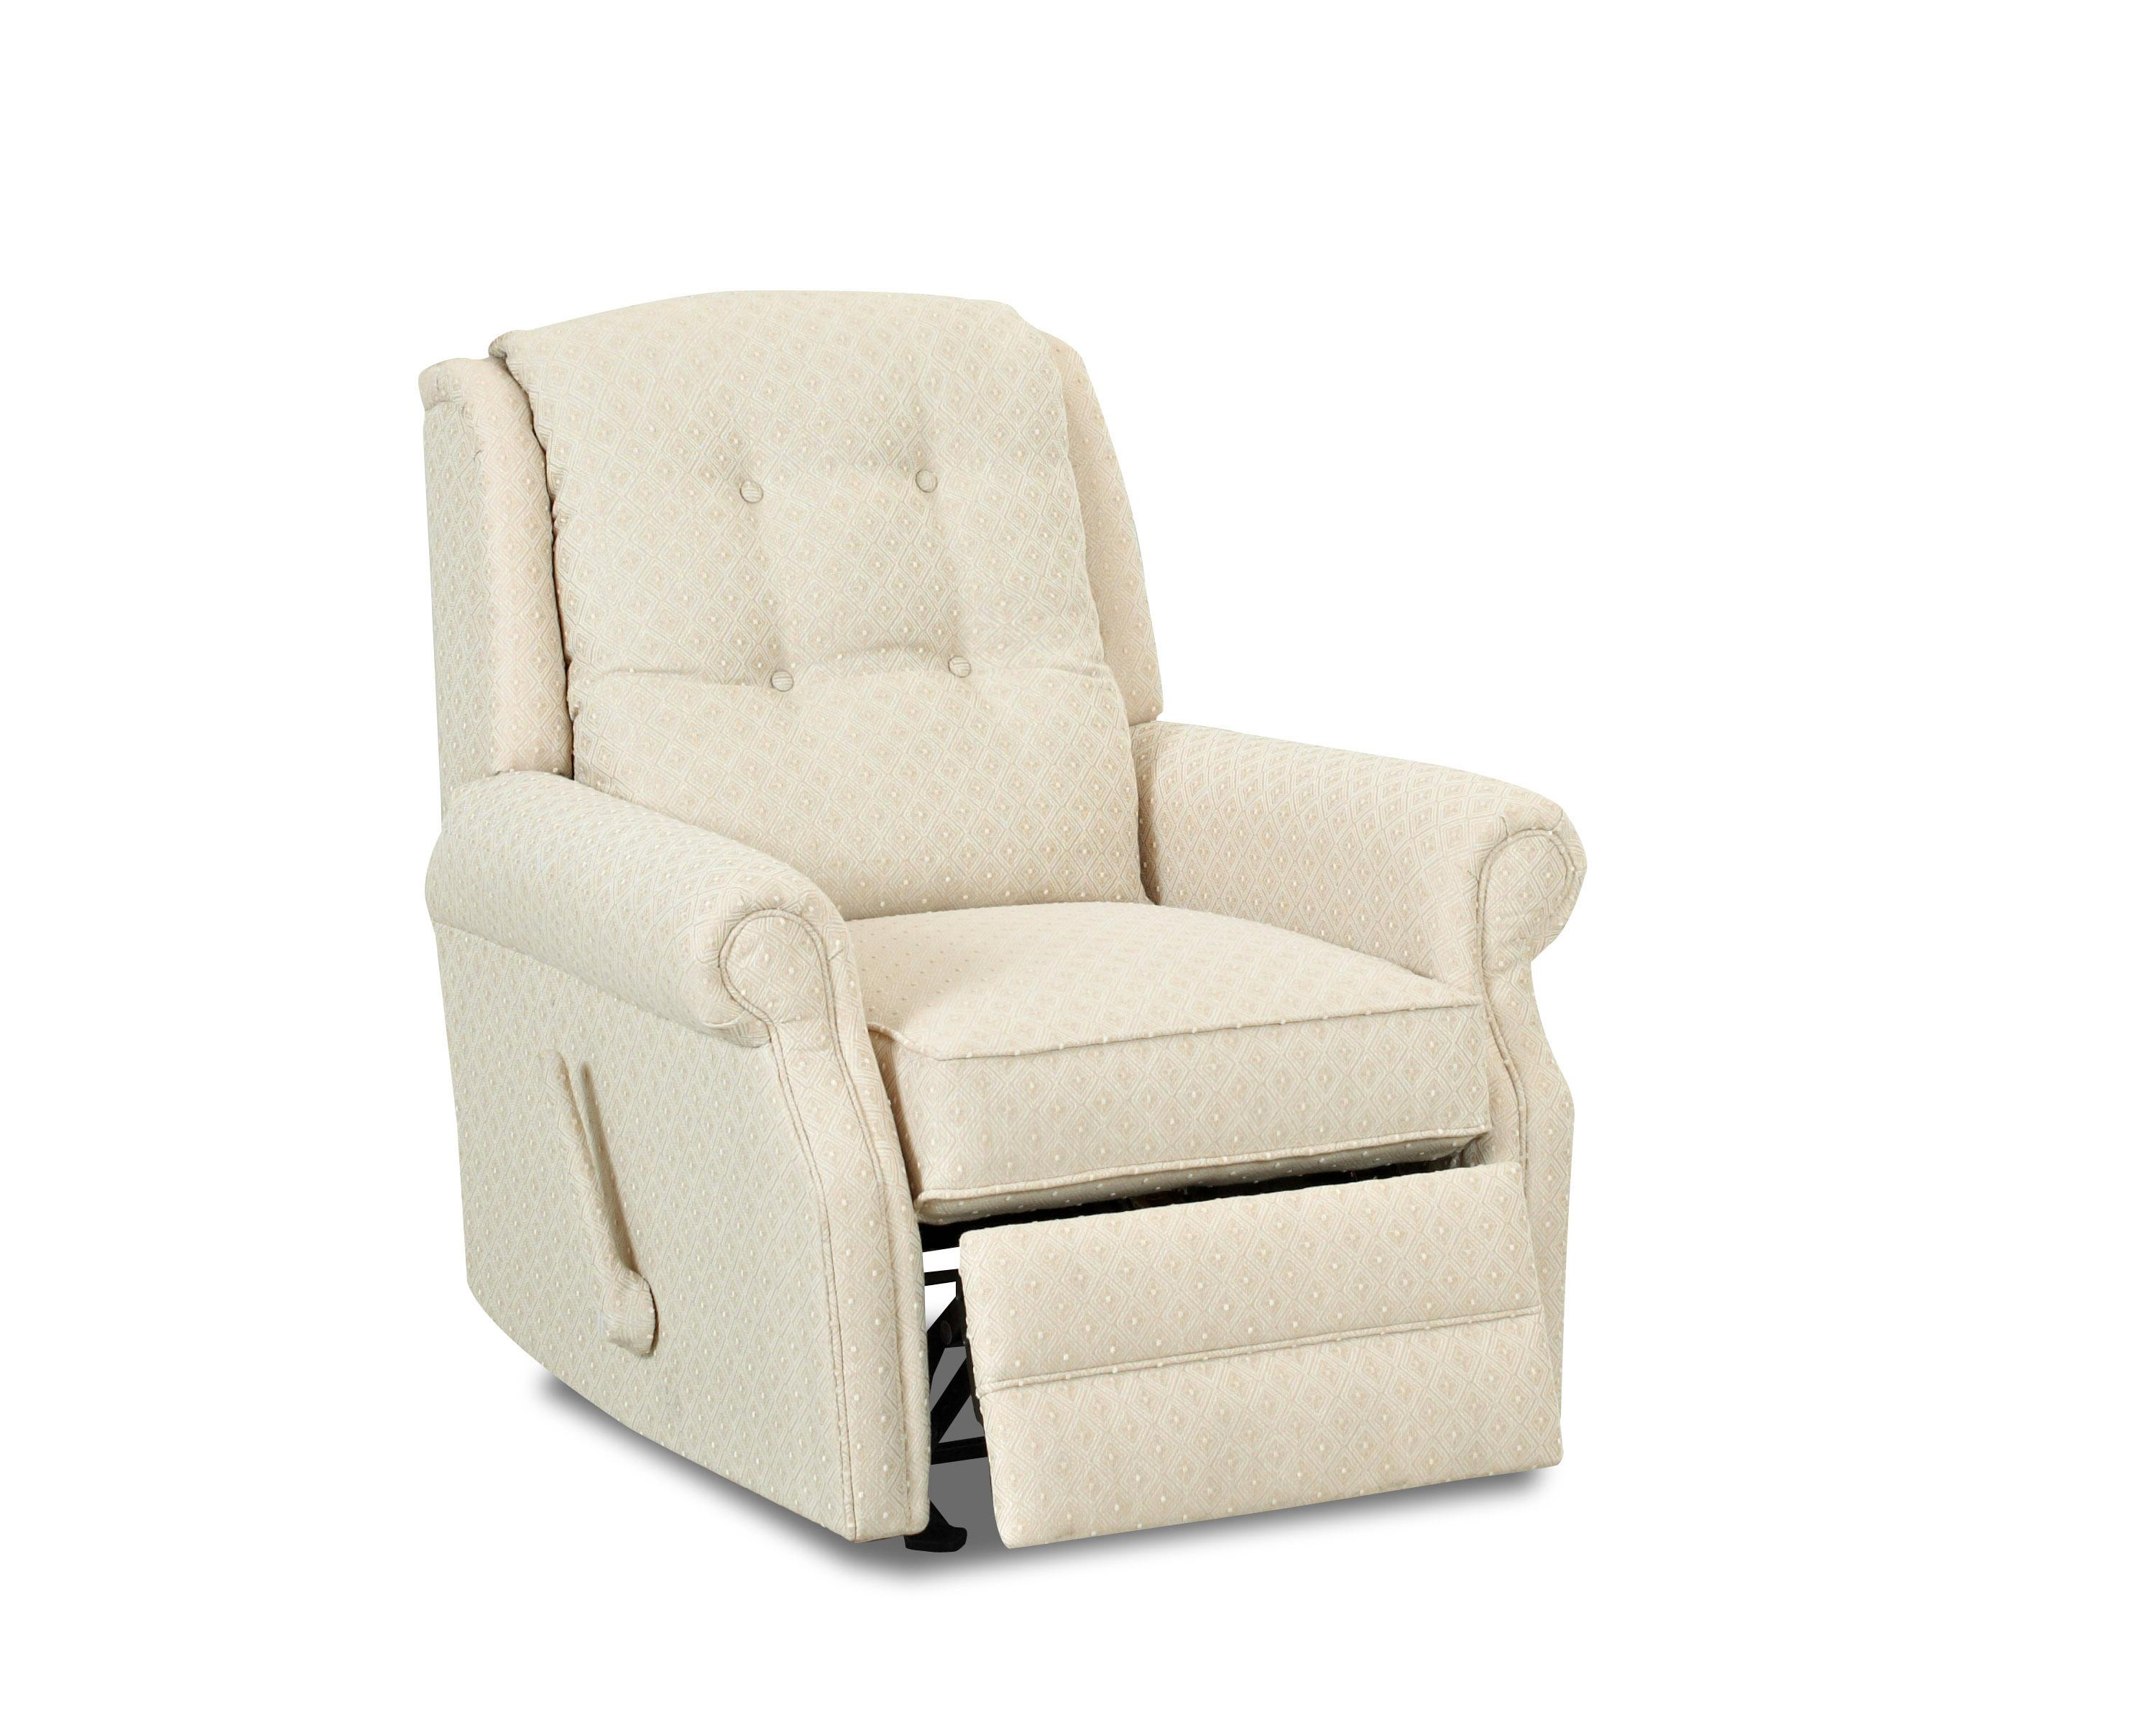 klaussner rocking chair chairpro sofia transitional manual swivel reclining with button tufting by | wolf and ...